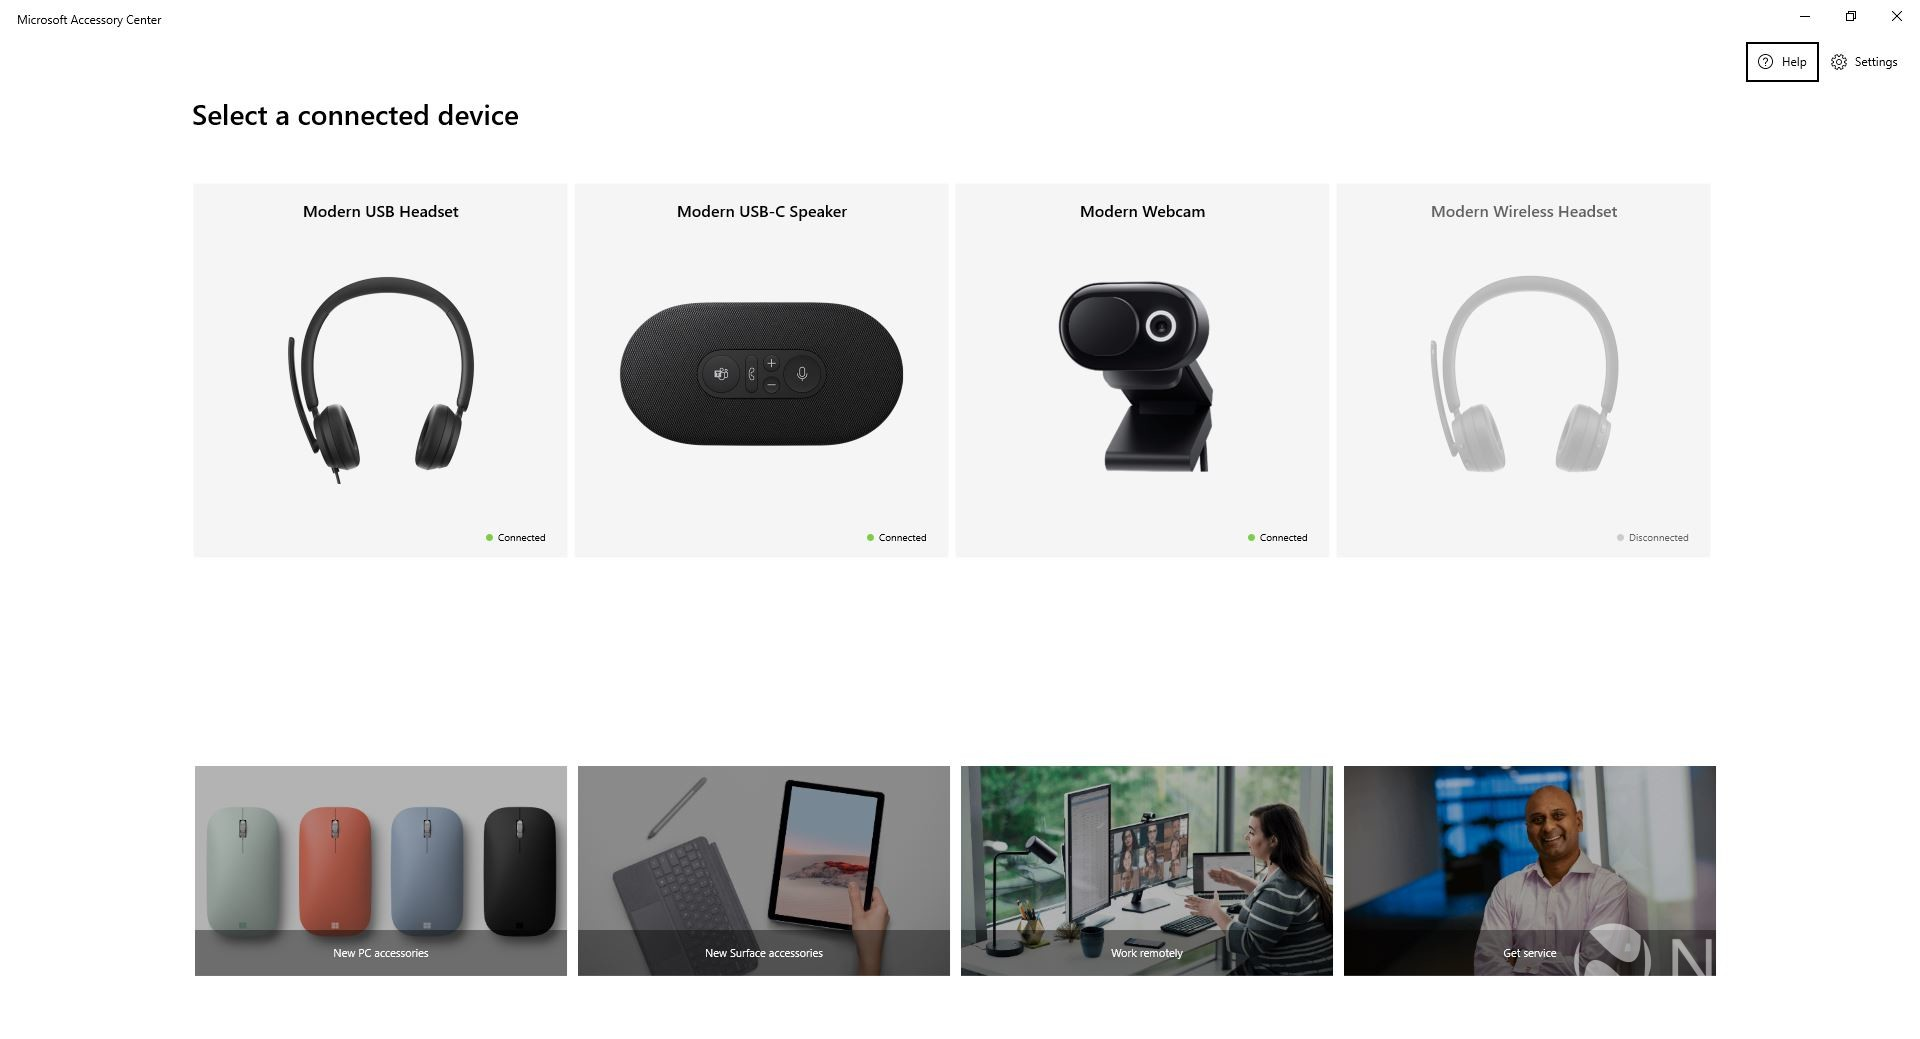 Microsoft Accessory Center main page showing connected devices